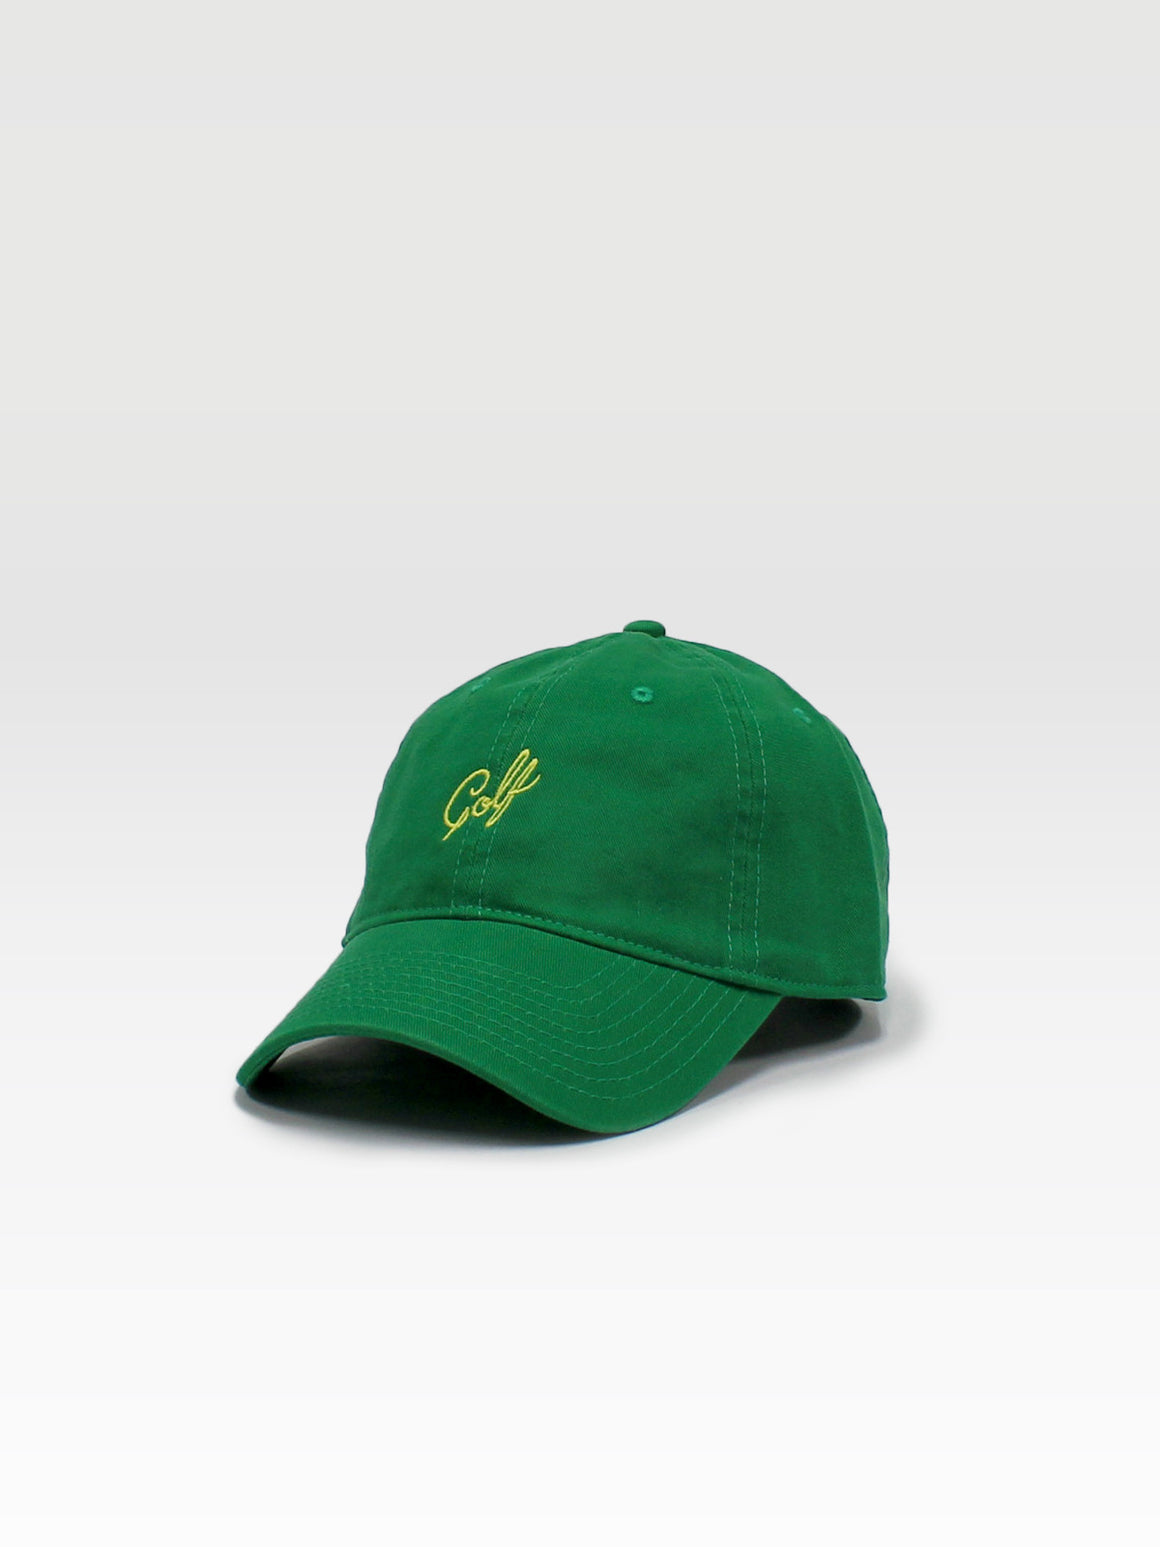 Golf Dad Hat - Green (Yellow)